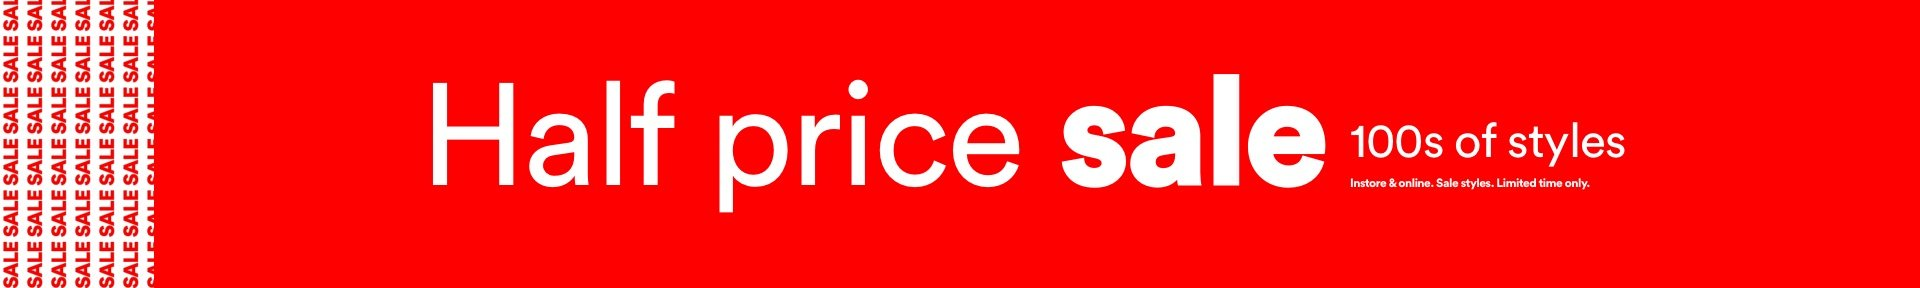 Sale up to 50% off original prices.